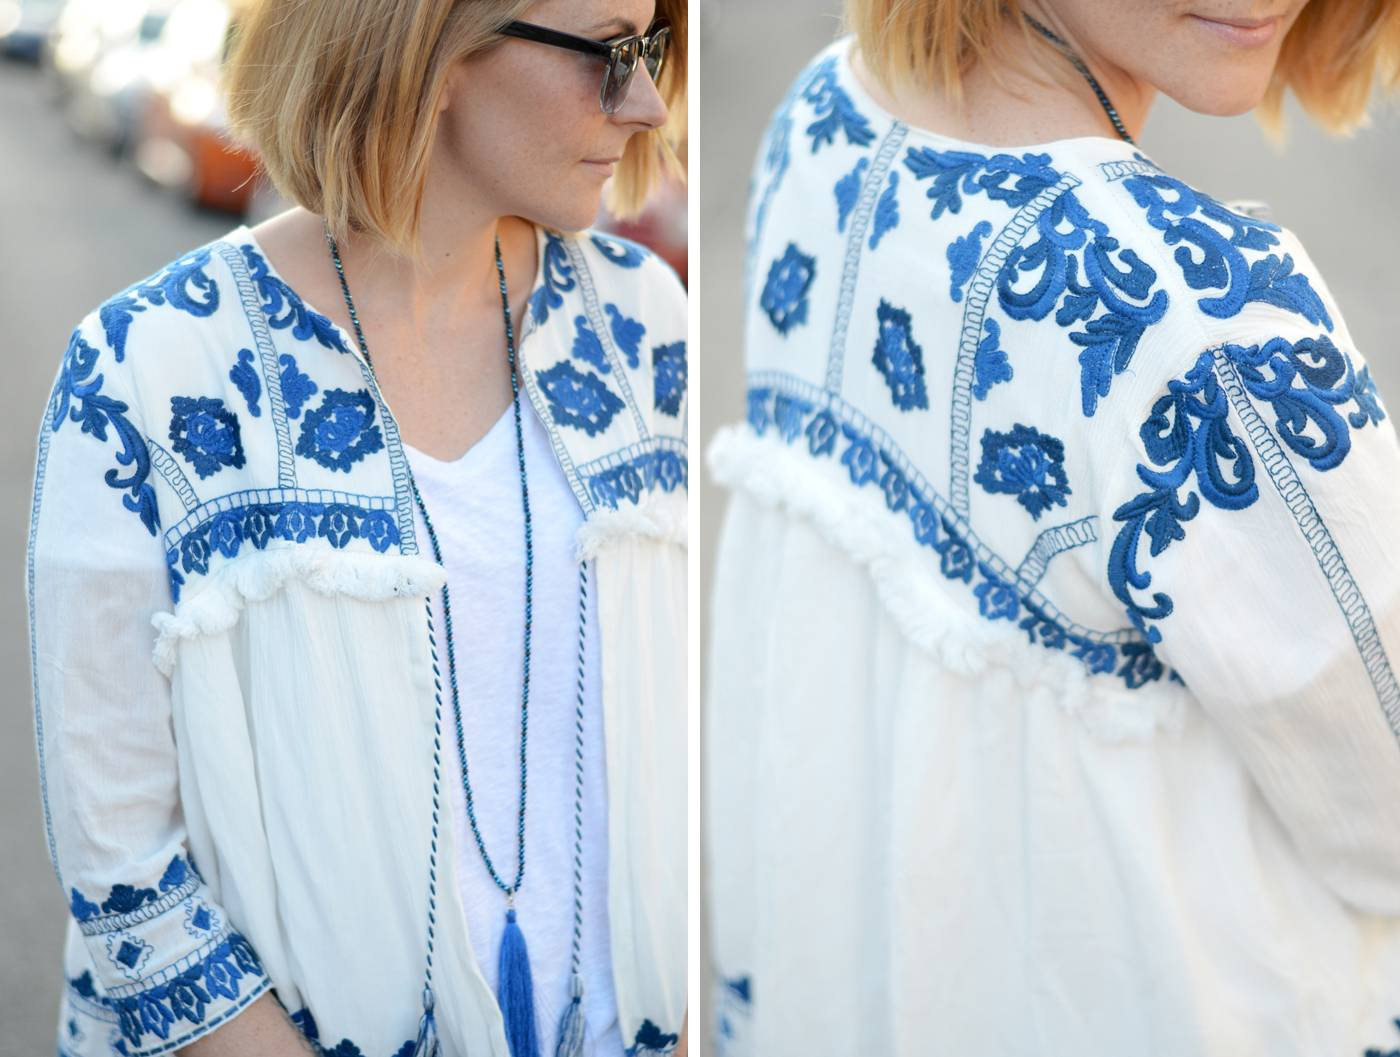 Zara embroidered jacket dupe outfit post bang on style